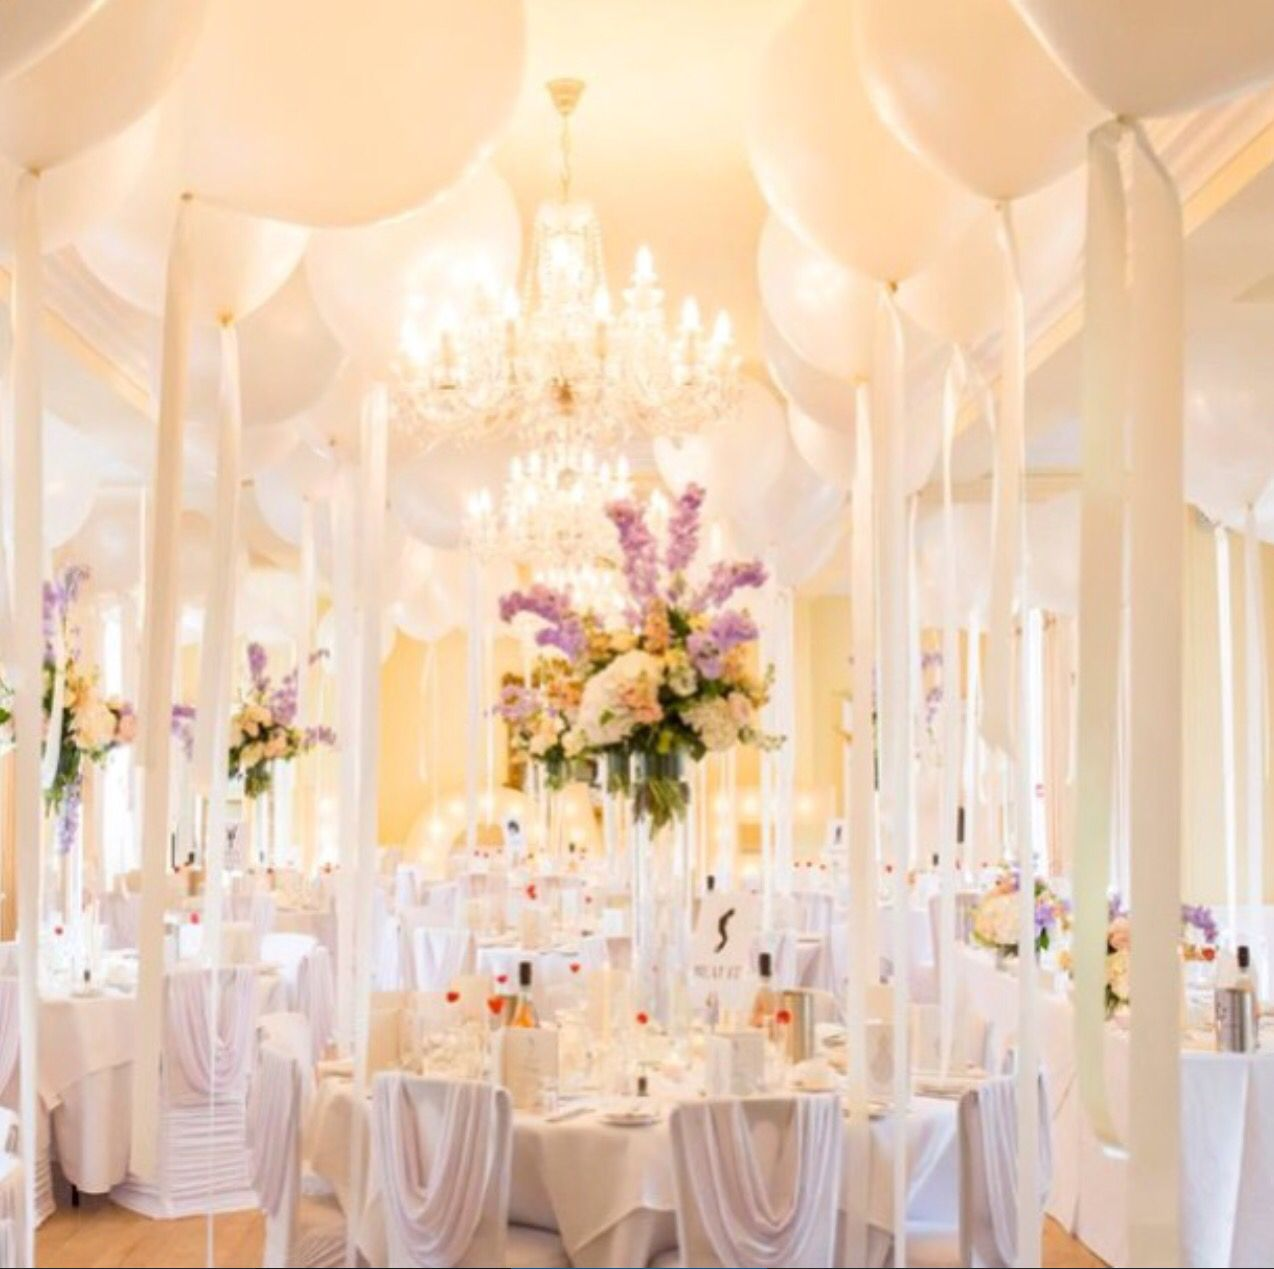 Balloon Decorations For Wedding Reception Ideas: Wedding Decorations, White Balloons, Purple Flowers, White